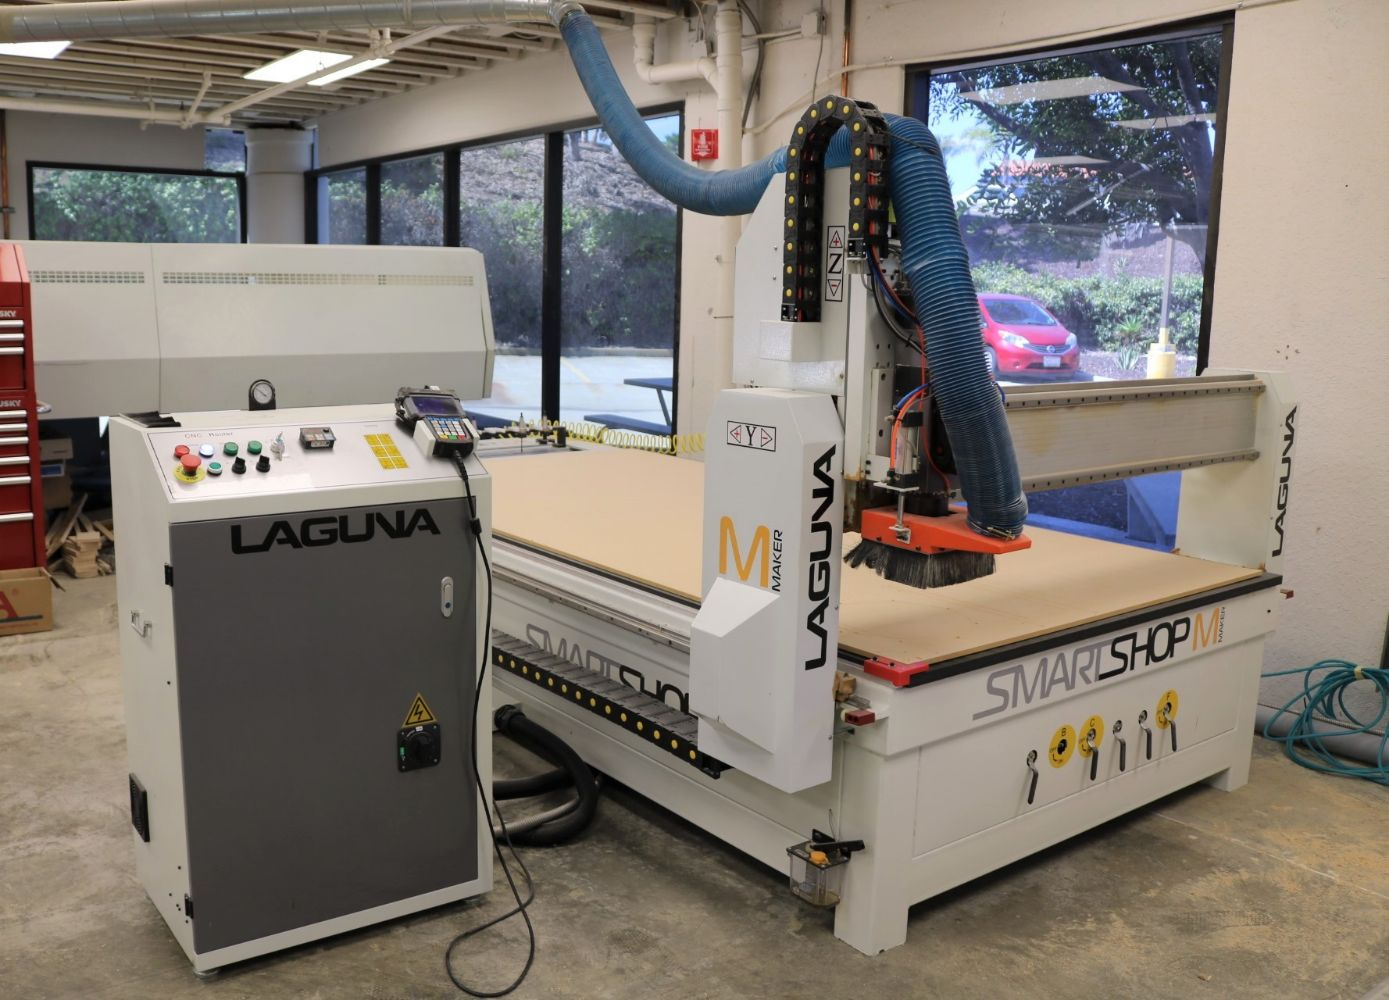 (2) 2018 LAGUNA SMARTSHOP MAKER CNC ROUTERS, SCHELLING PANEL SAW, TOYOTA & HYSTER FORKLIFTS, PALLET RACKING, NEW SPEAKERS, SOUND STAGE!